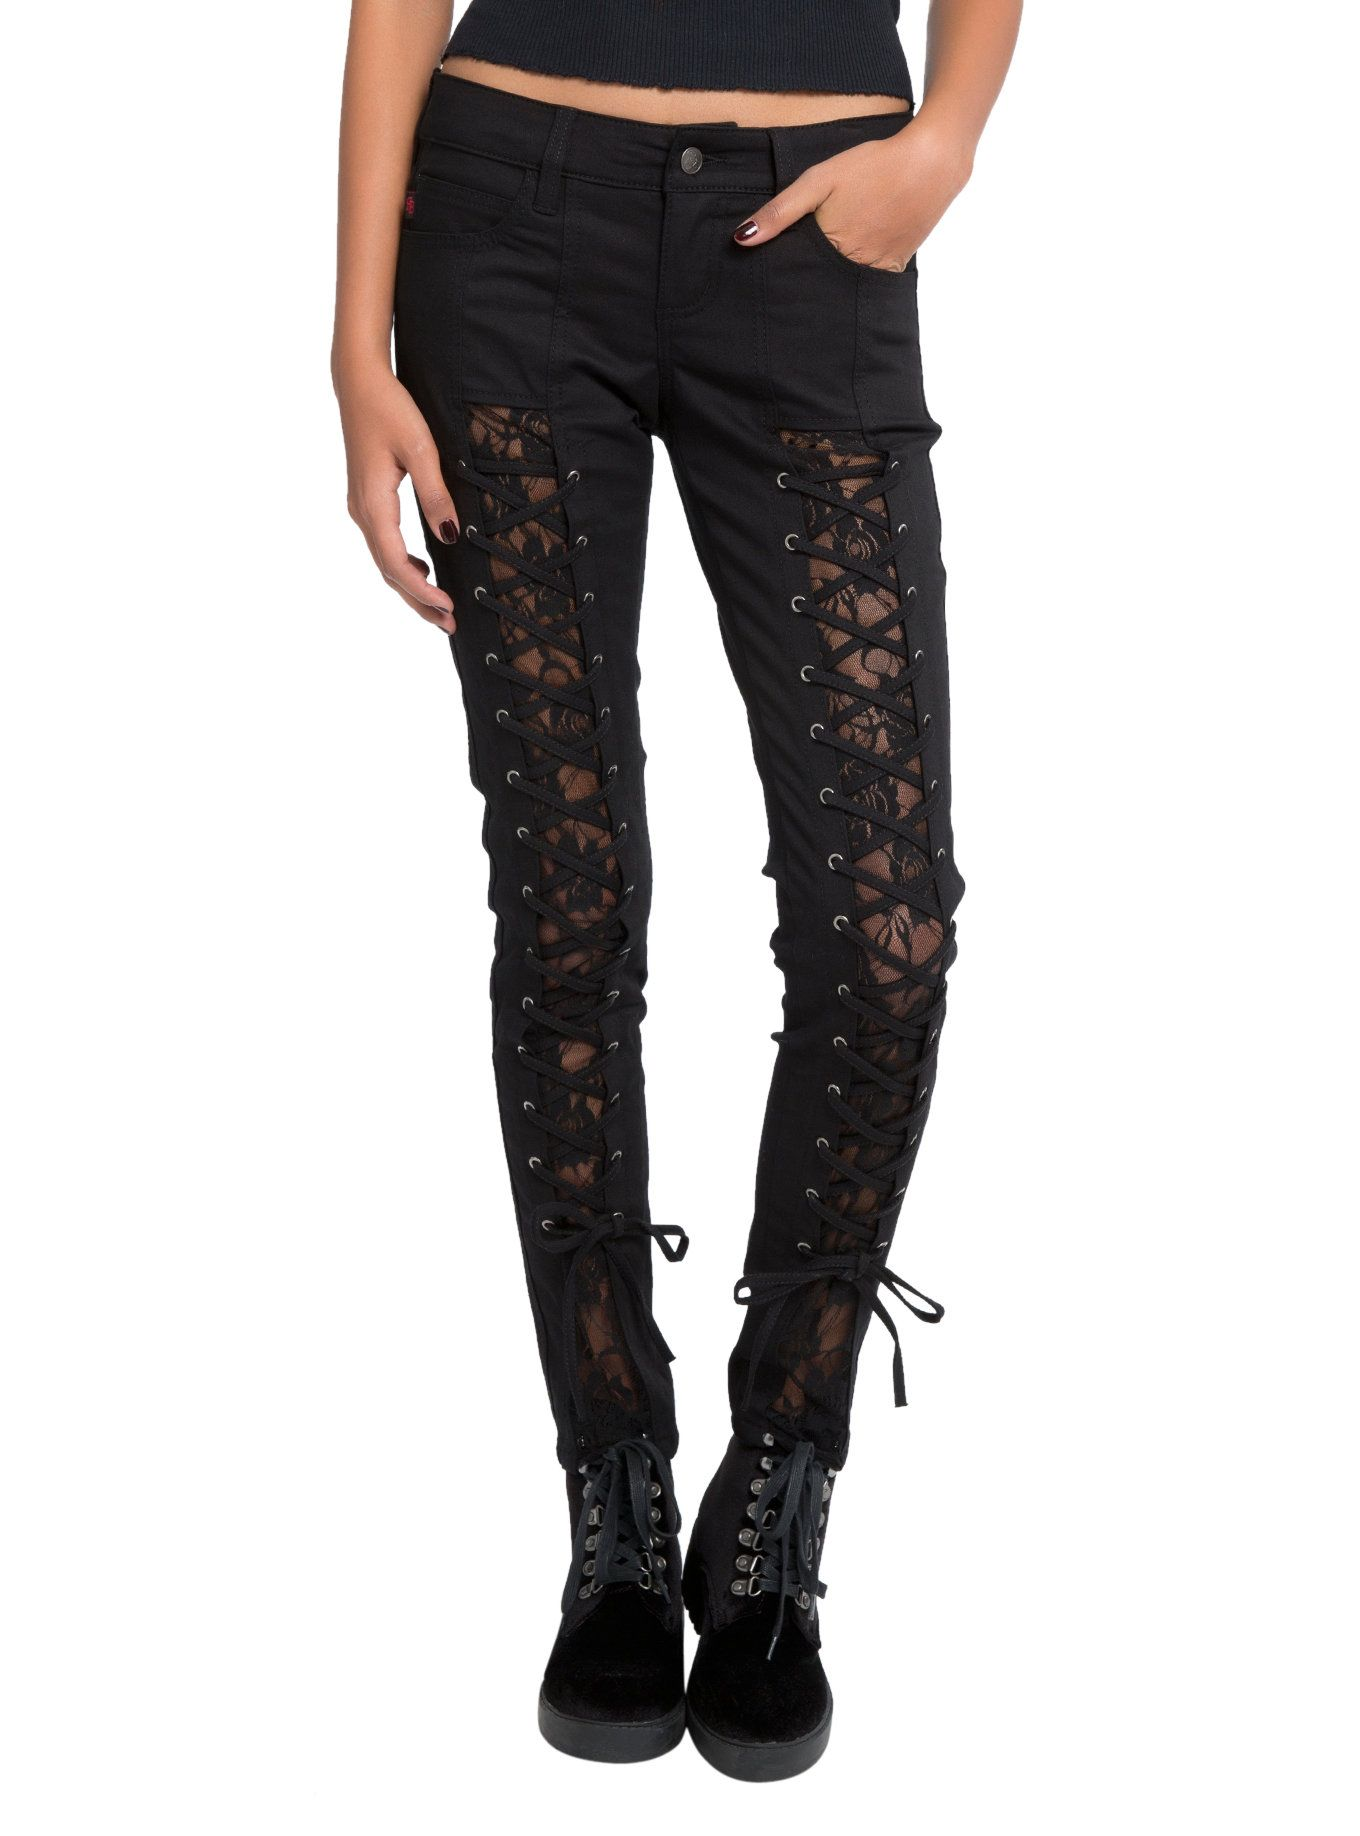 7b2fd8503ce80d Black skinny jeans from Royal Bones with strap and buckle accents down the  legs. I really want these. | Concert clothes | Buckle jeans, Jeans, Denim  pants